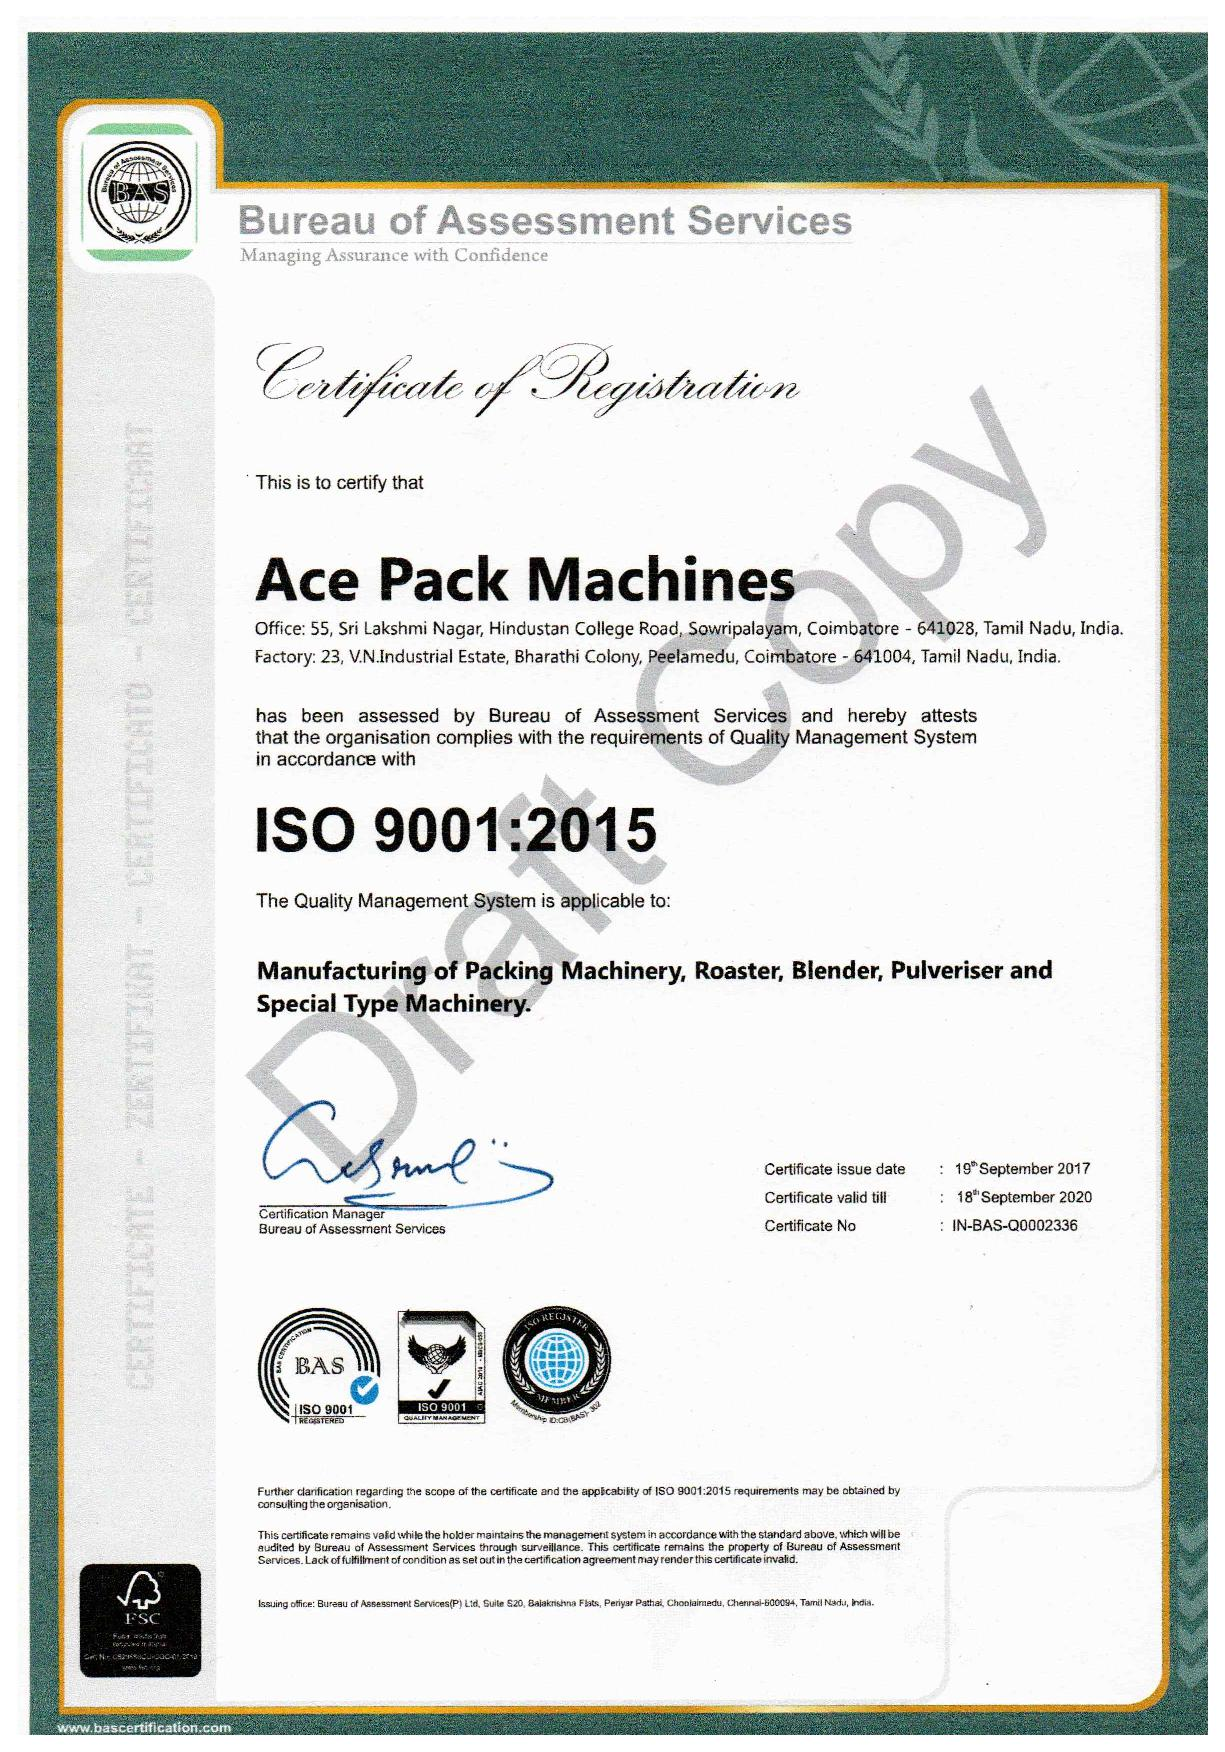 Ace Pack Machines - ISO 9001 : 2015 Company